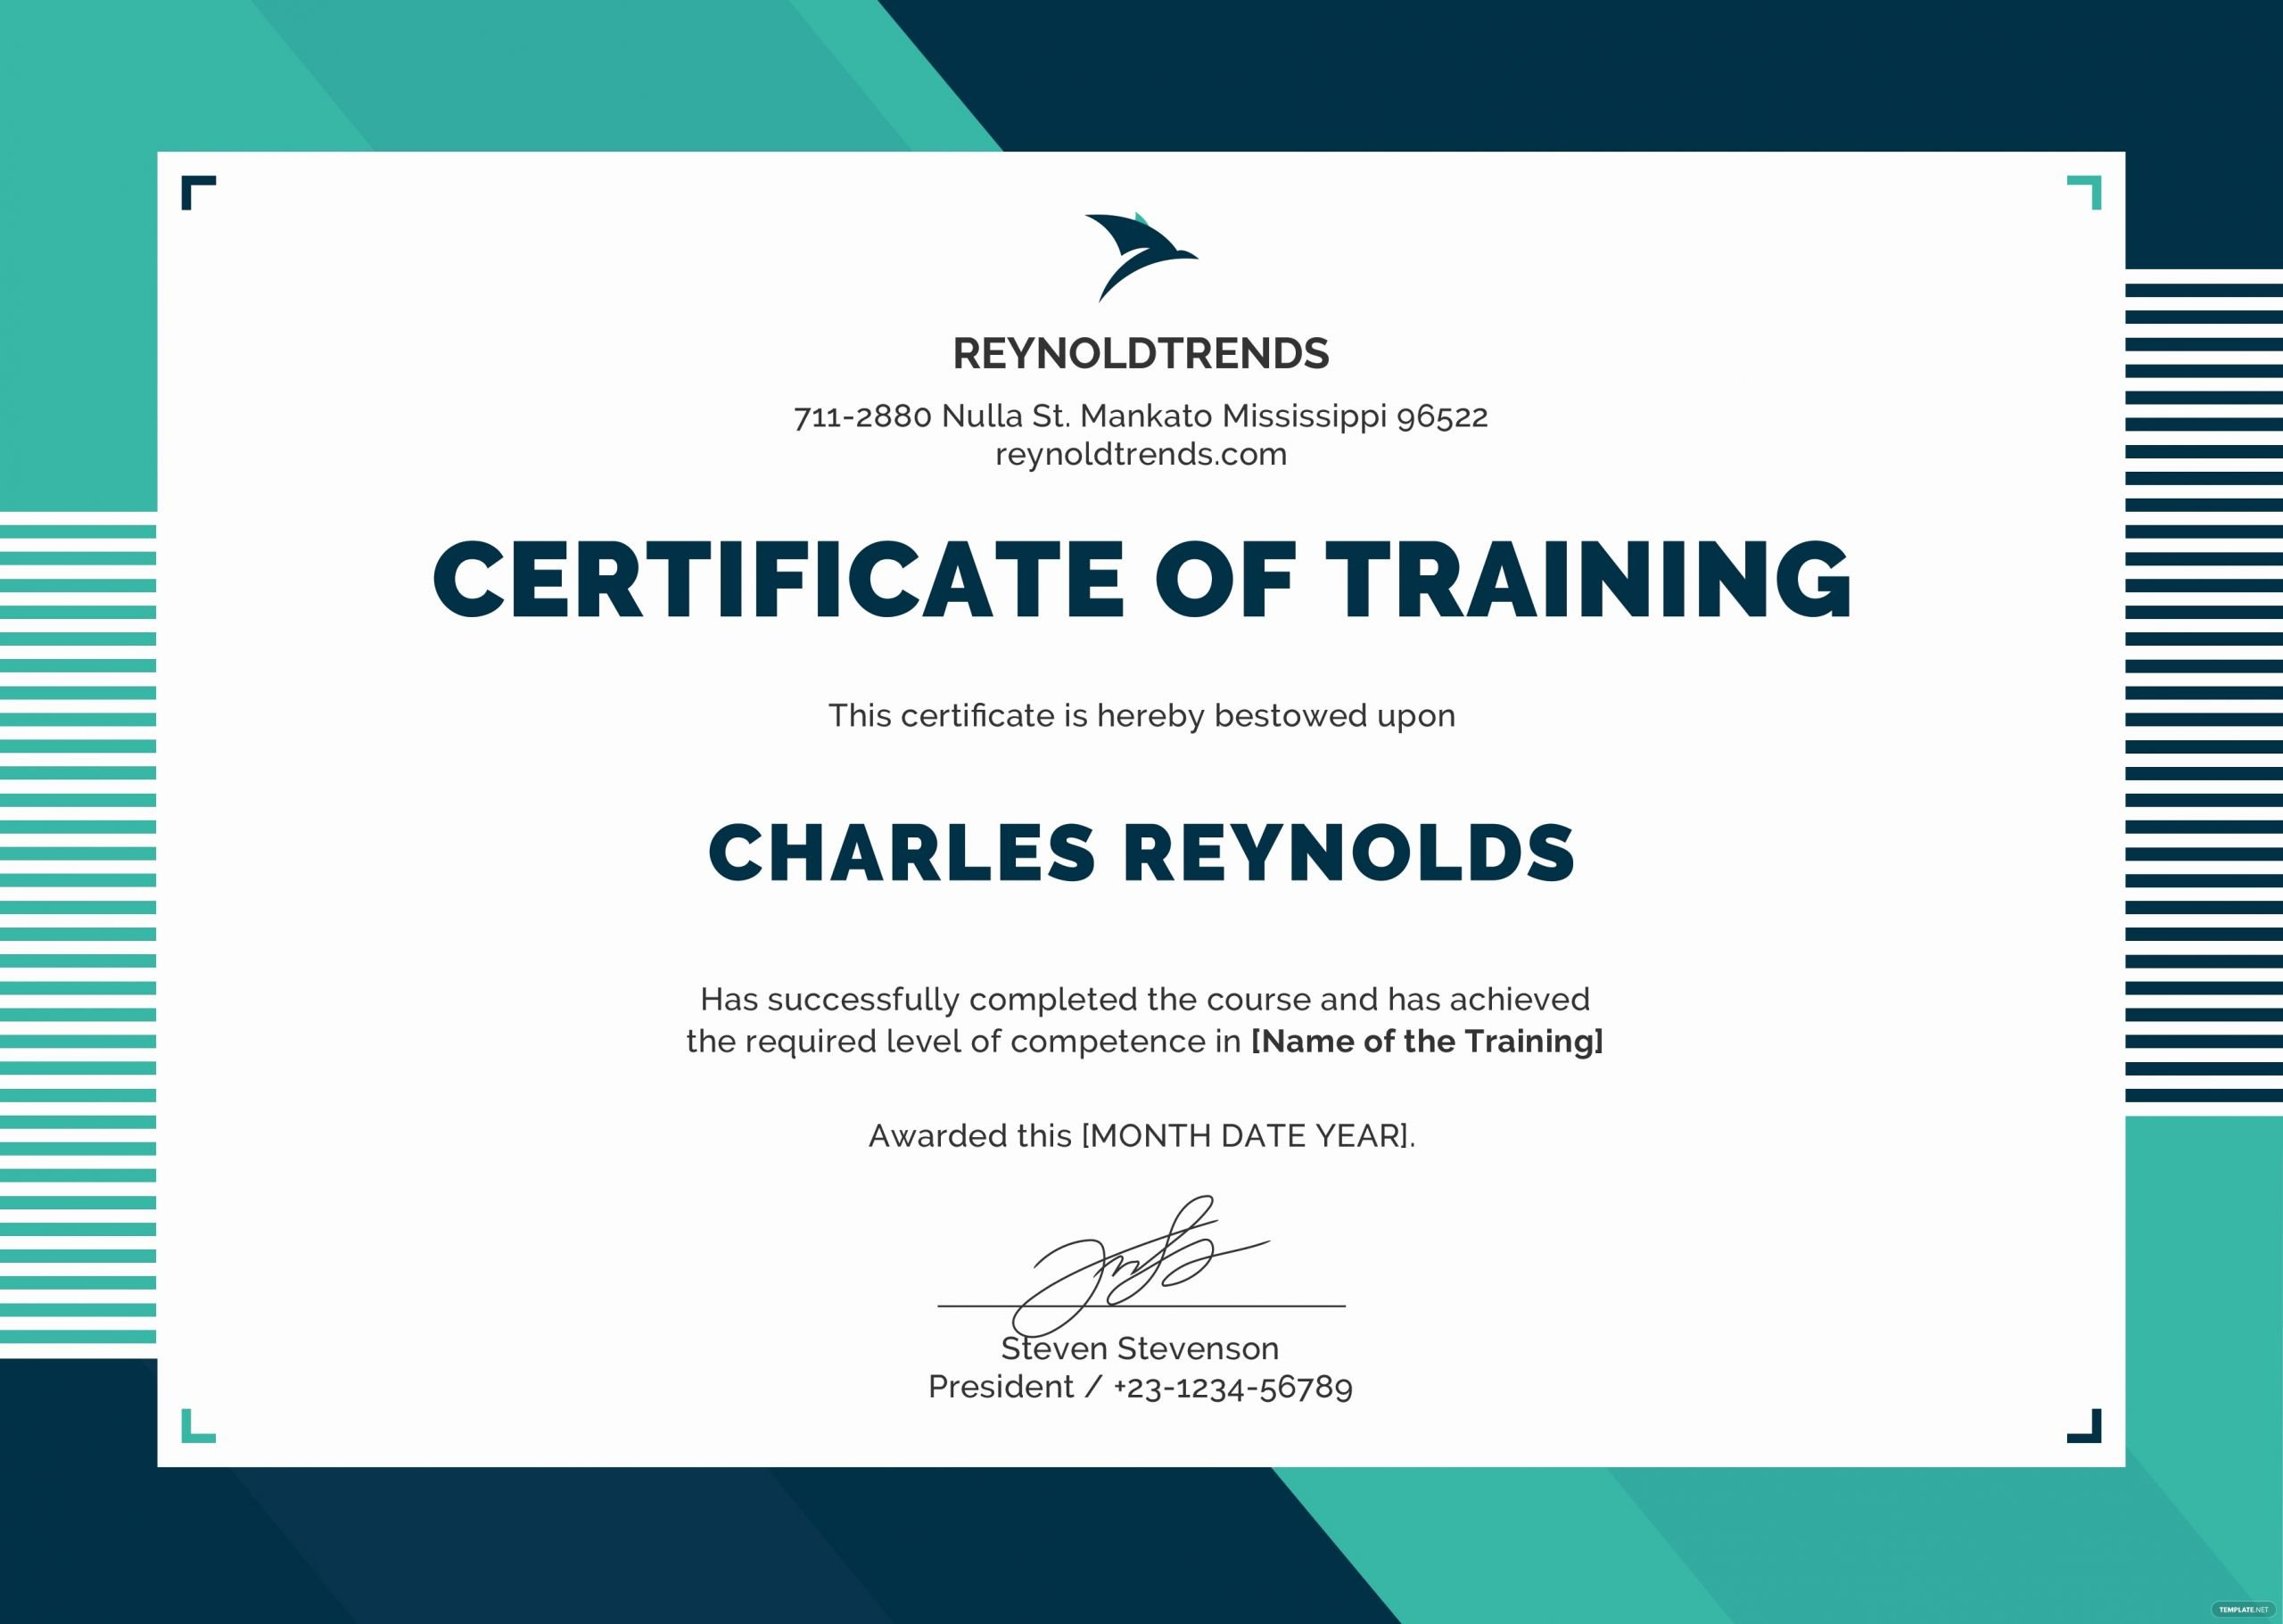 Nwcg Training Certificate Template Beautiful Free Pany Training Certificate Template In Psd Ms Word